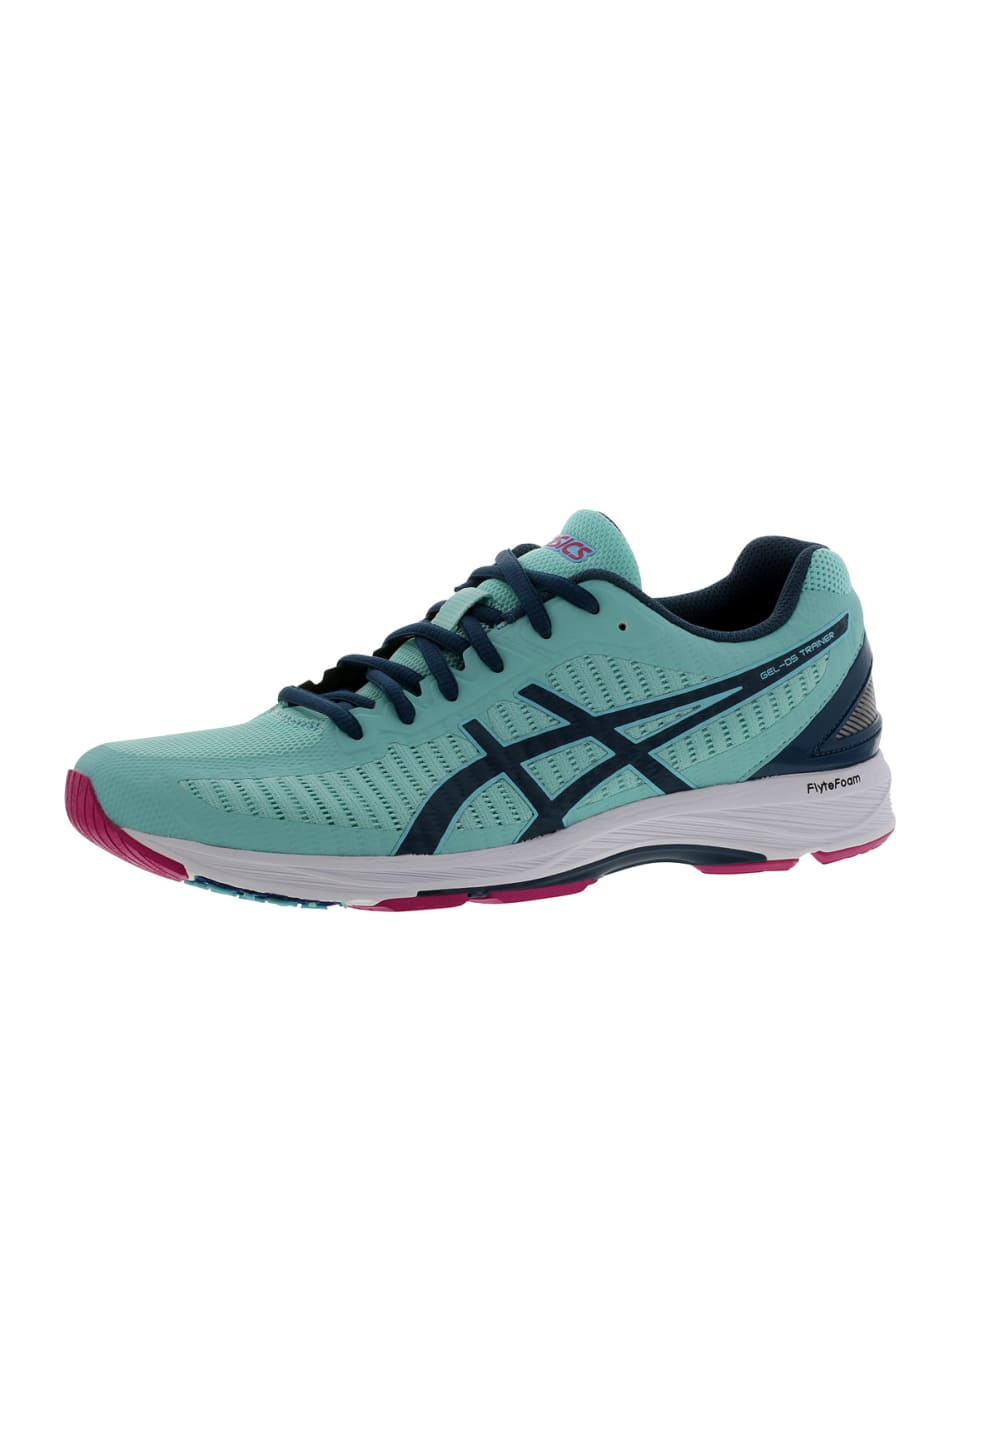 acheter en ligne 4f592 bf8ff ASICS GEL-DS Trainer 23 - Running shoes for Women - Blue